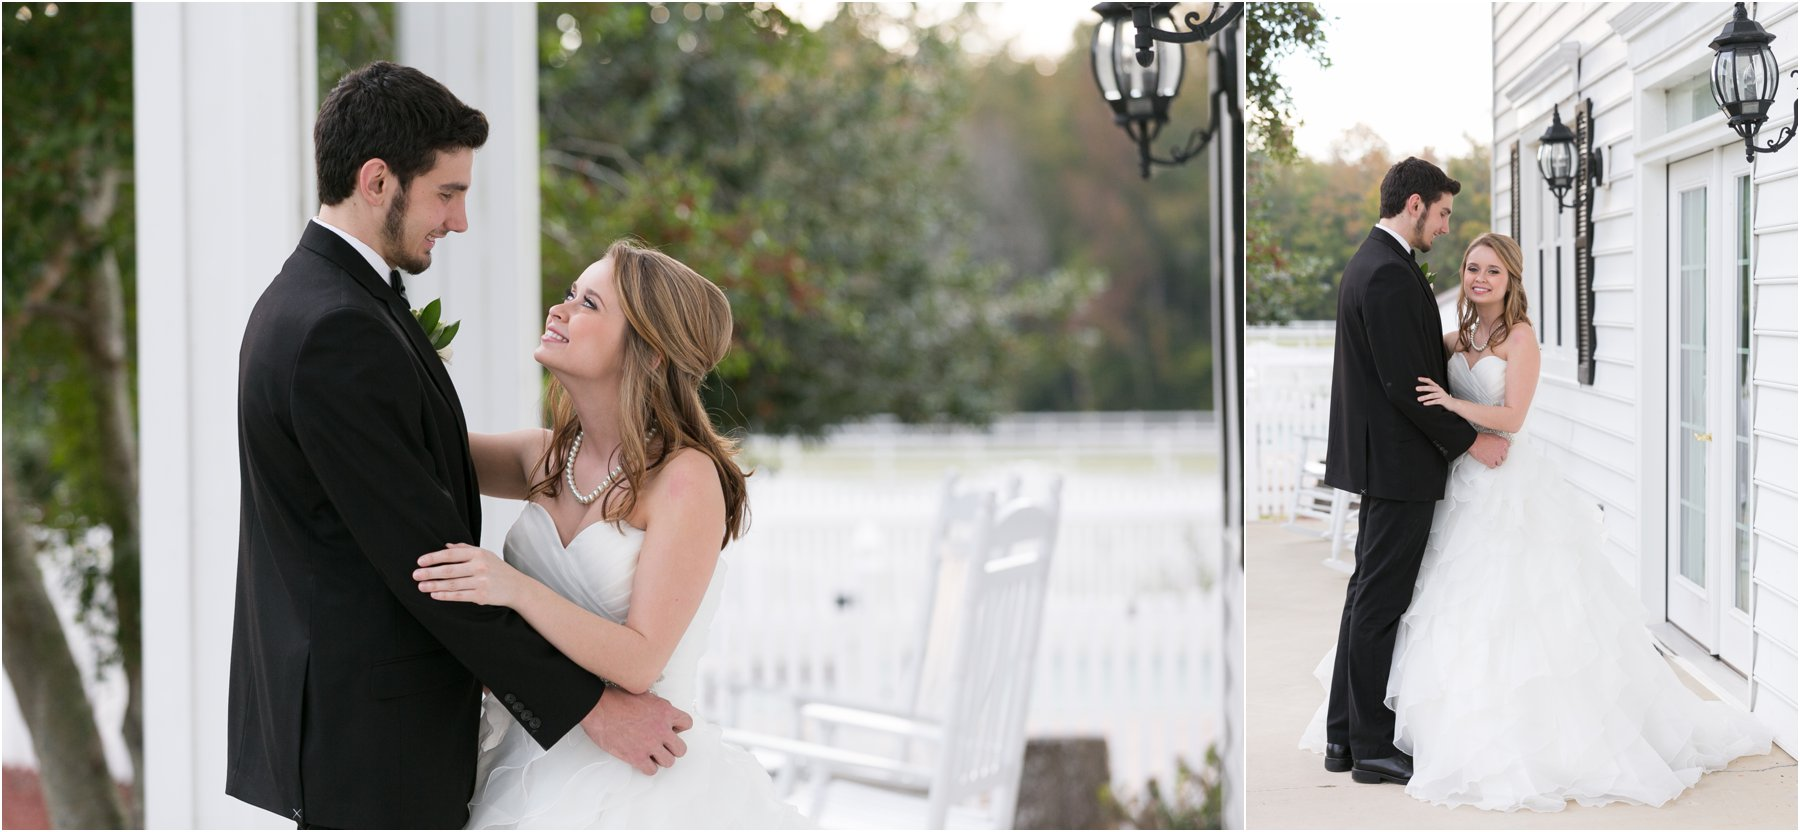 Holly_Ridge_Manor_Wedding_Photography_Jessica_Ryan_Photography_virginia_virginia_beach_0260